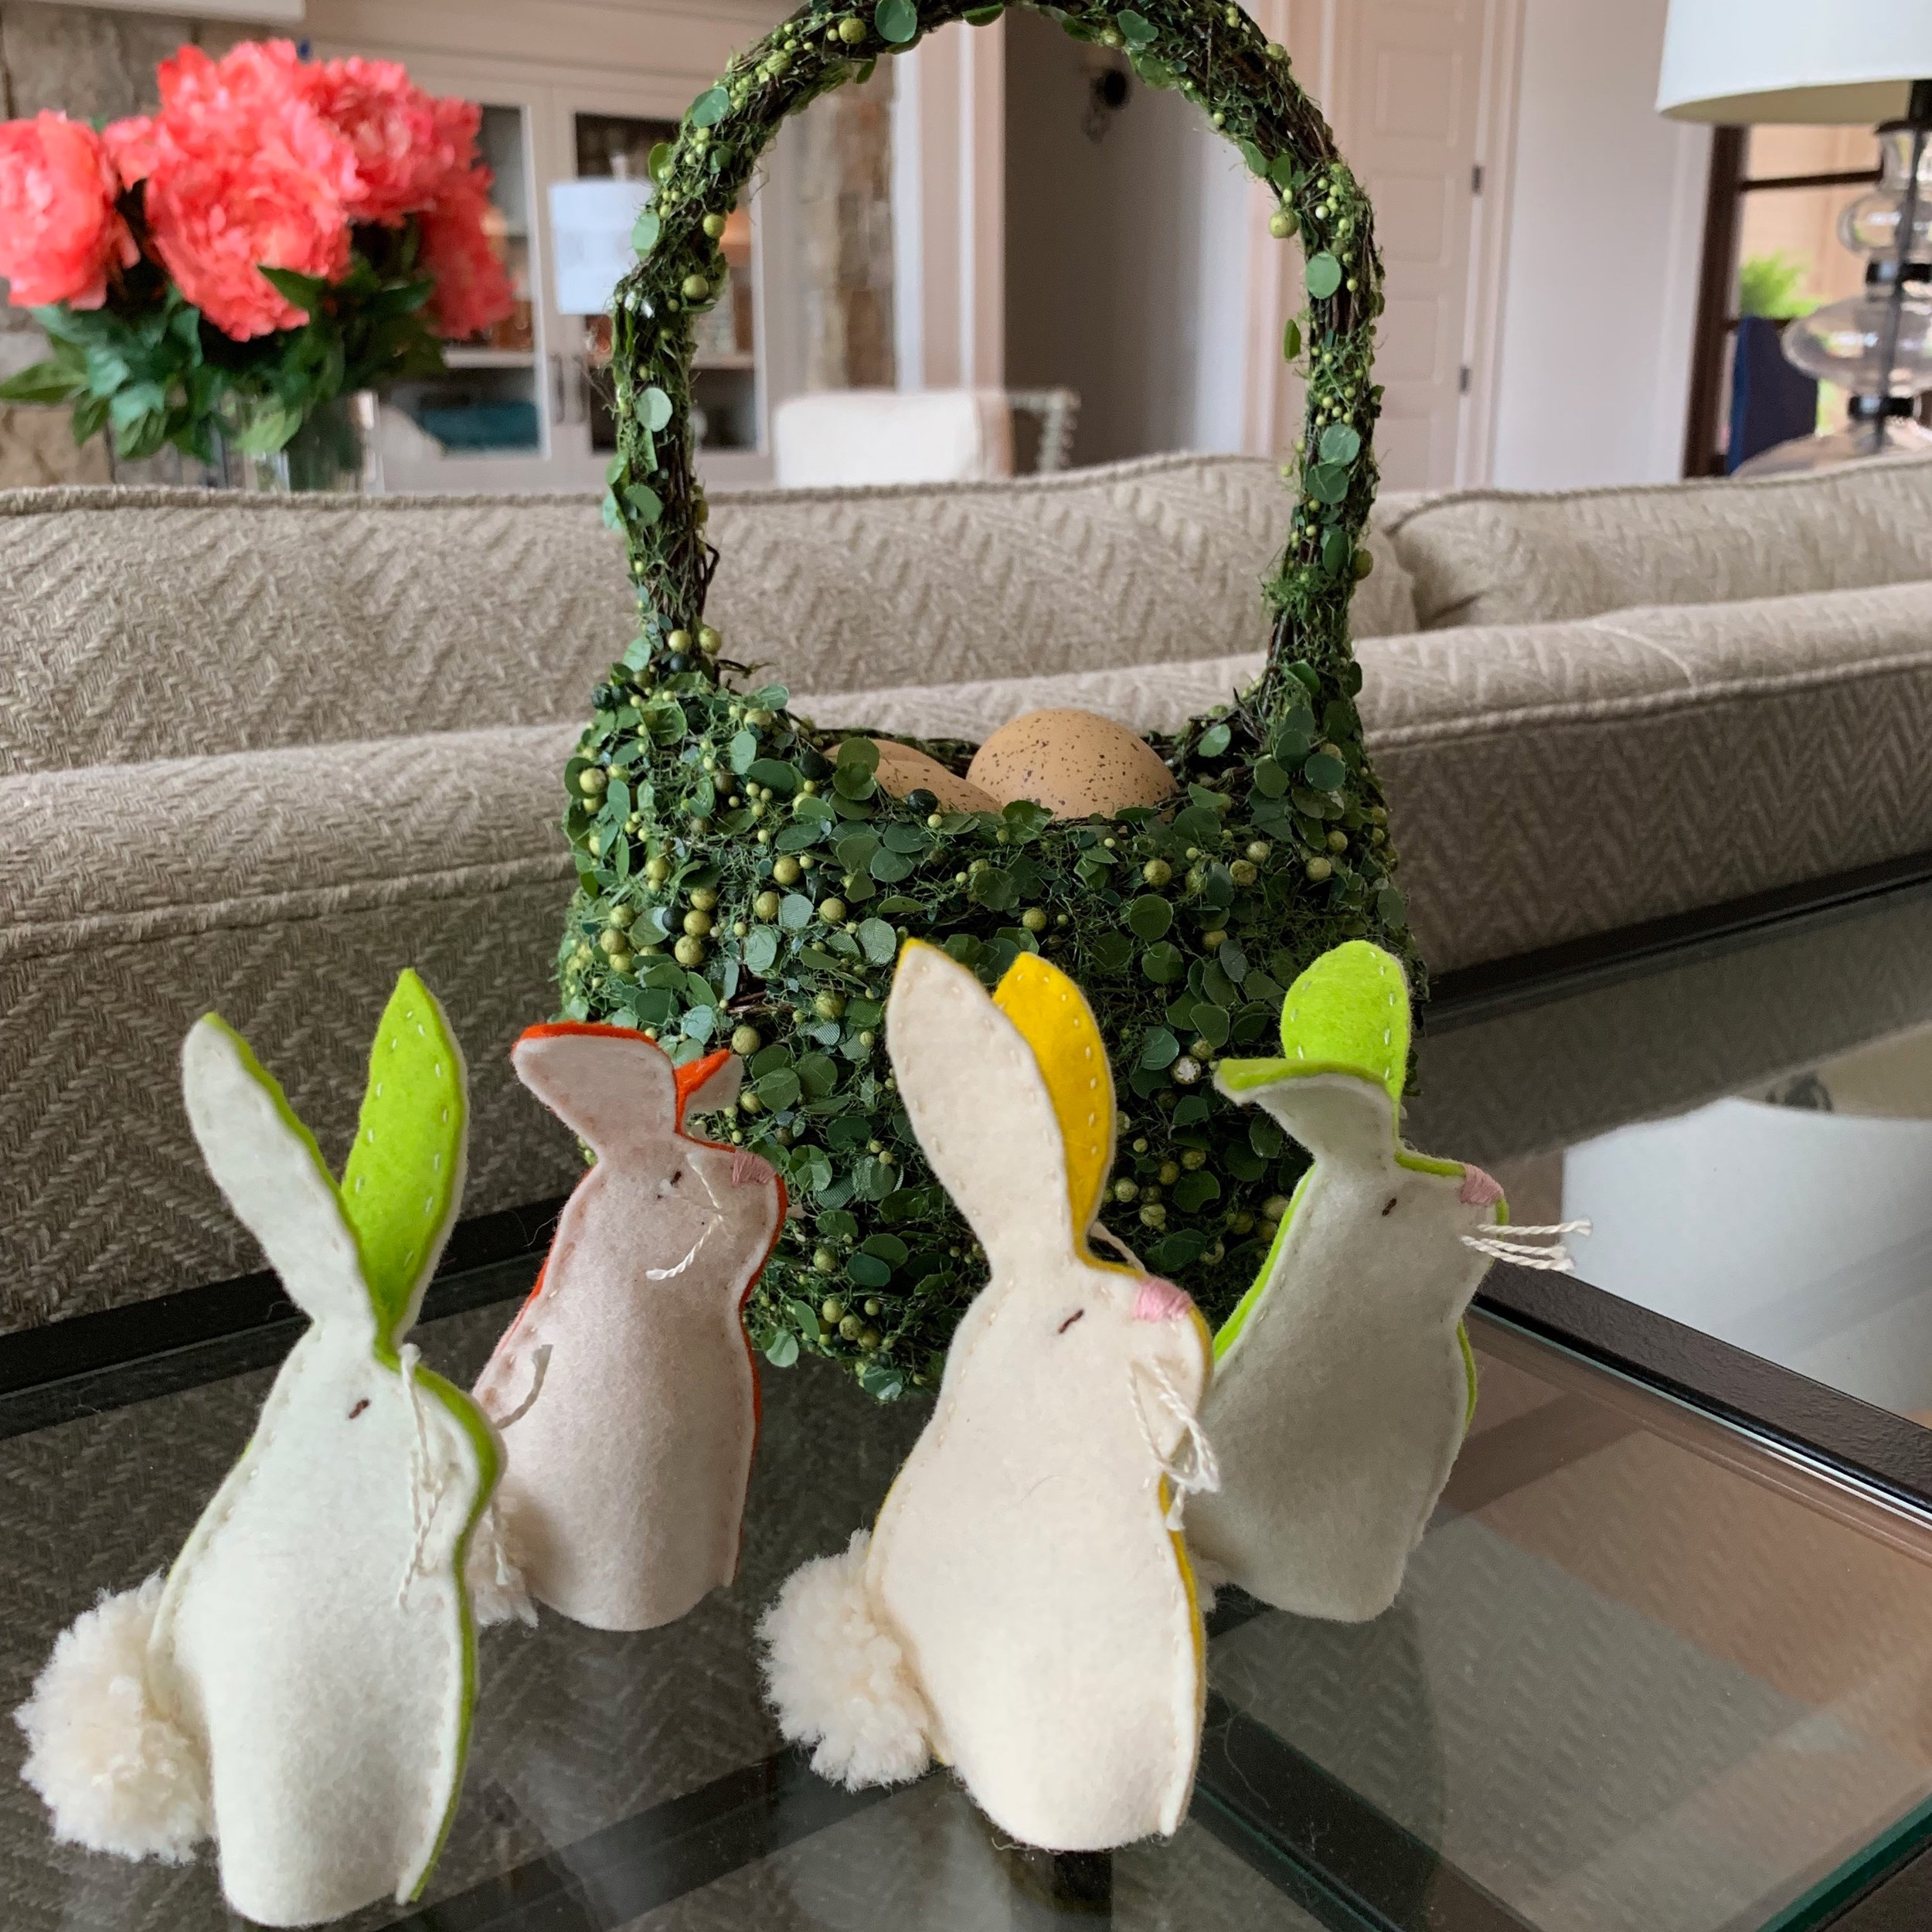 Aren't these bunnies just the cutest? I made them about a dozen years ago and have them around the house. I just noticed one is missing a nose. This sweet basket is from Pottery Barn.